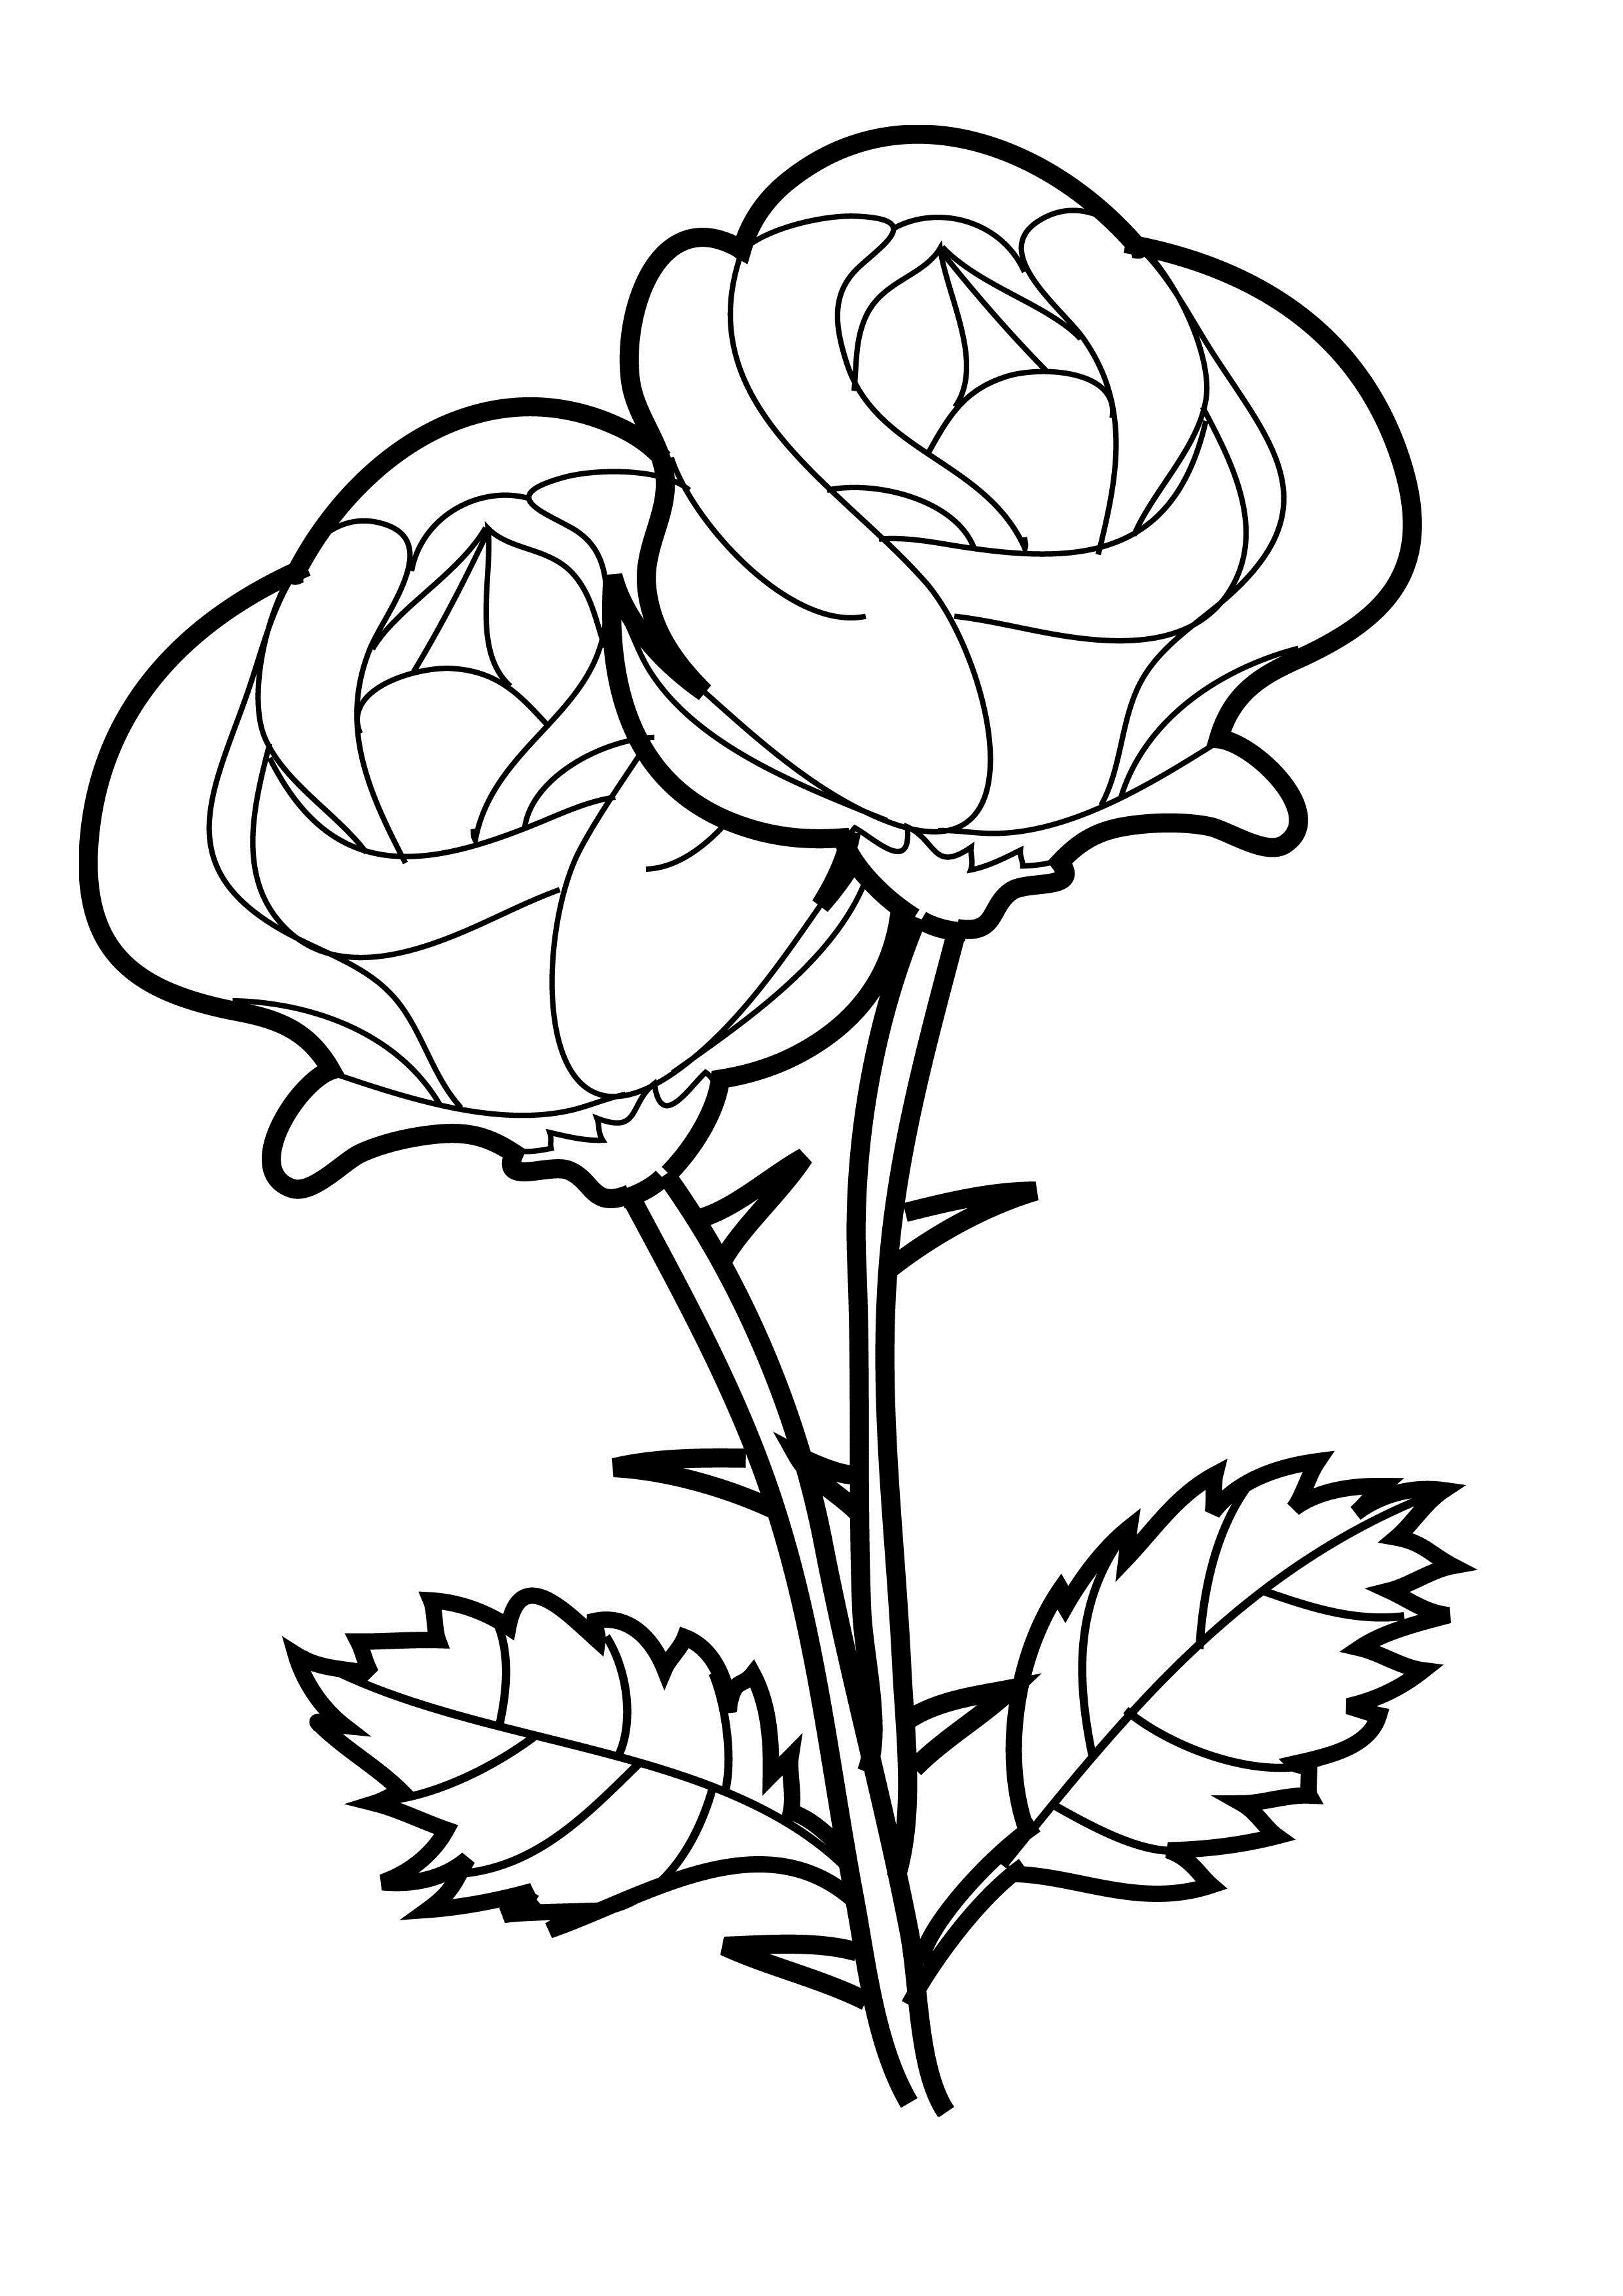 rose coloring roses coloring pages to download and print for free rose coloring